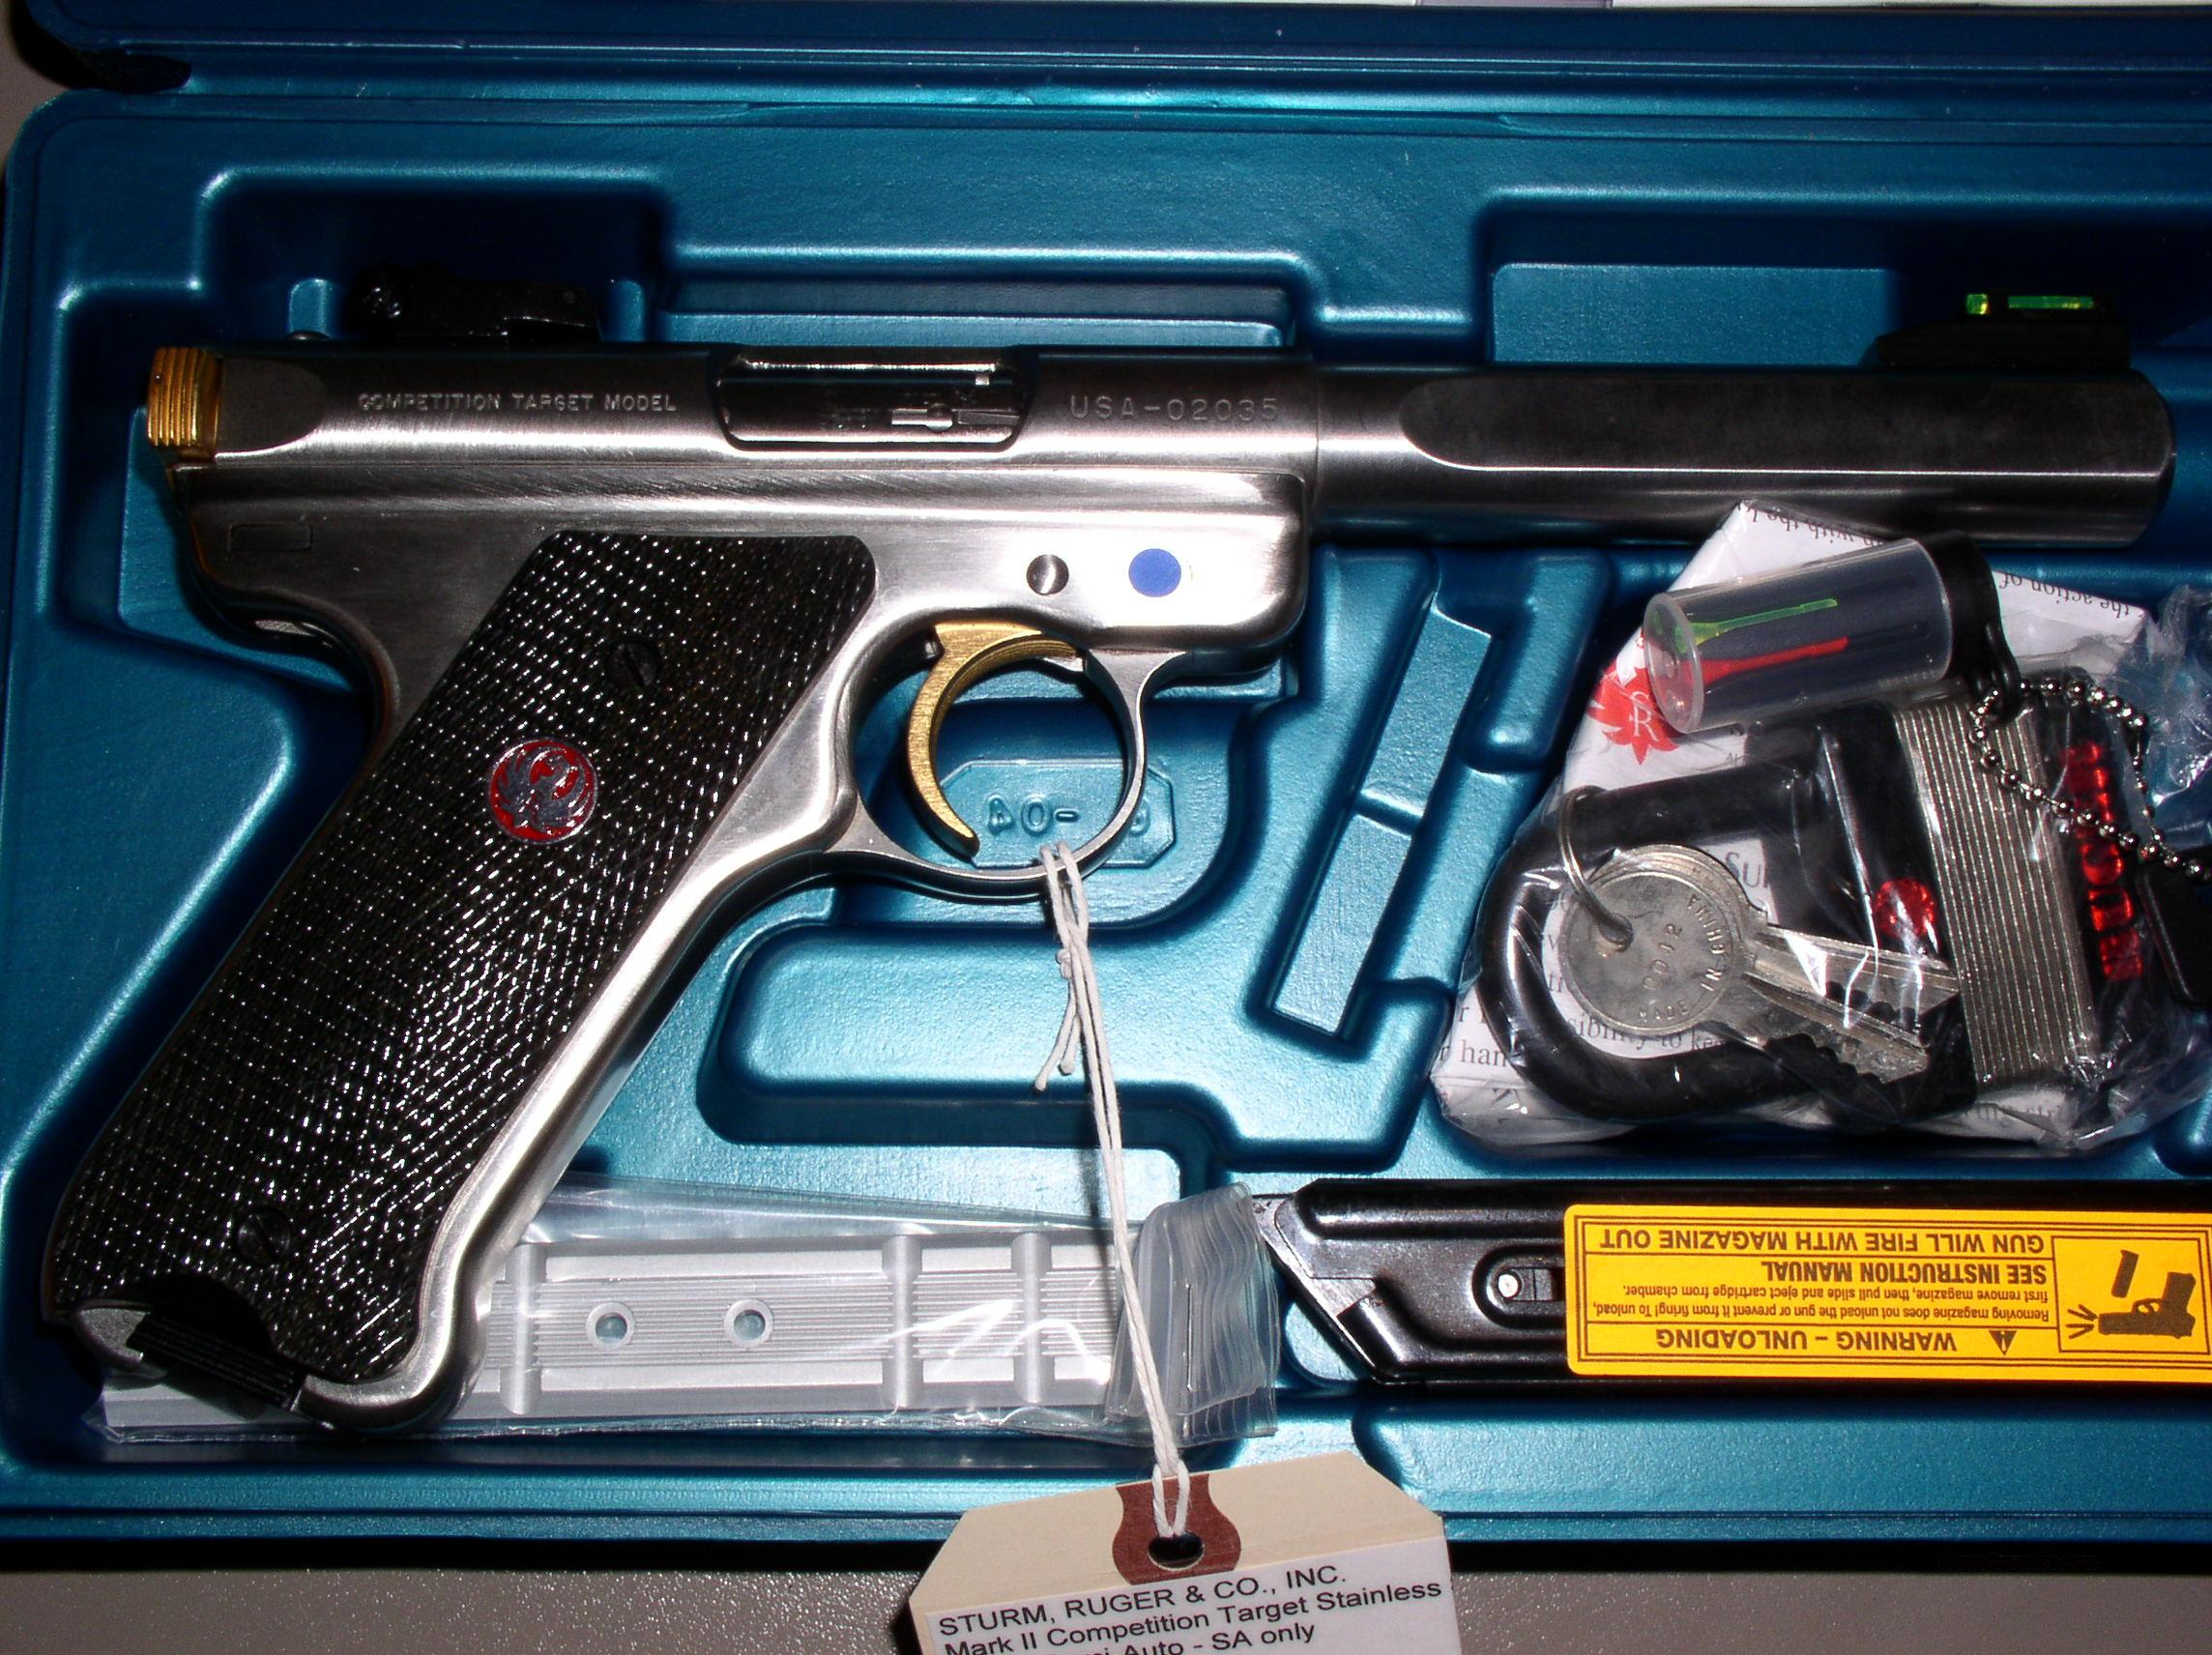 Ruger USA Shooting Team 2004 Mark II Target NEW!  Guns > Pistols > Ruger Semi-Auto Pistols > Mark I & II Family